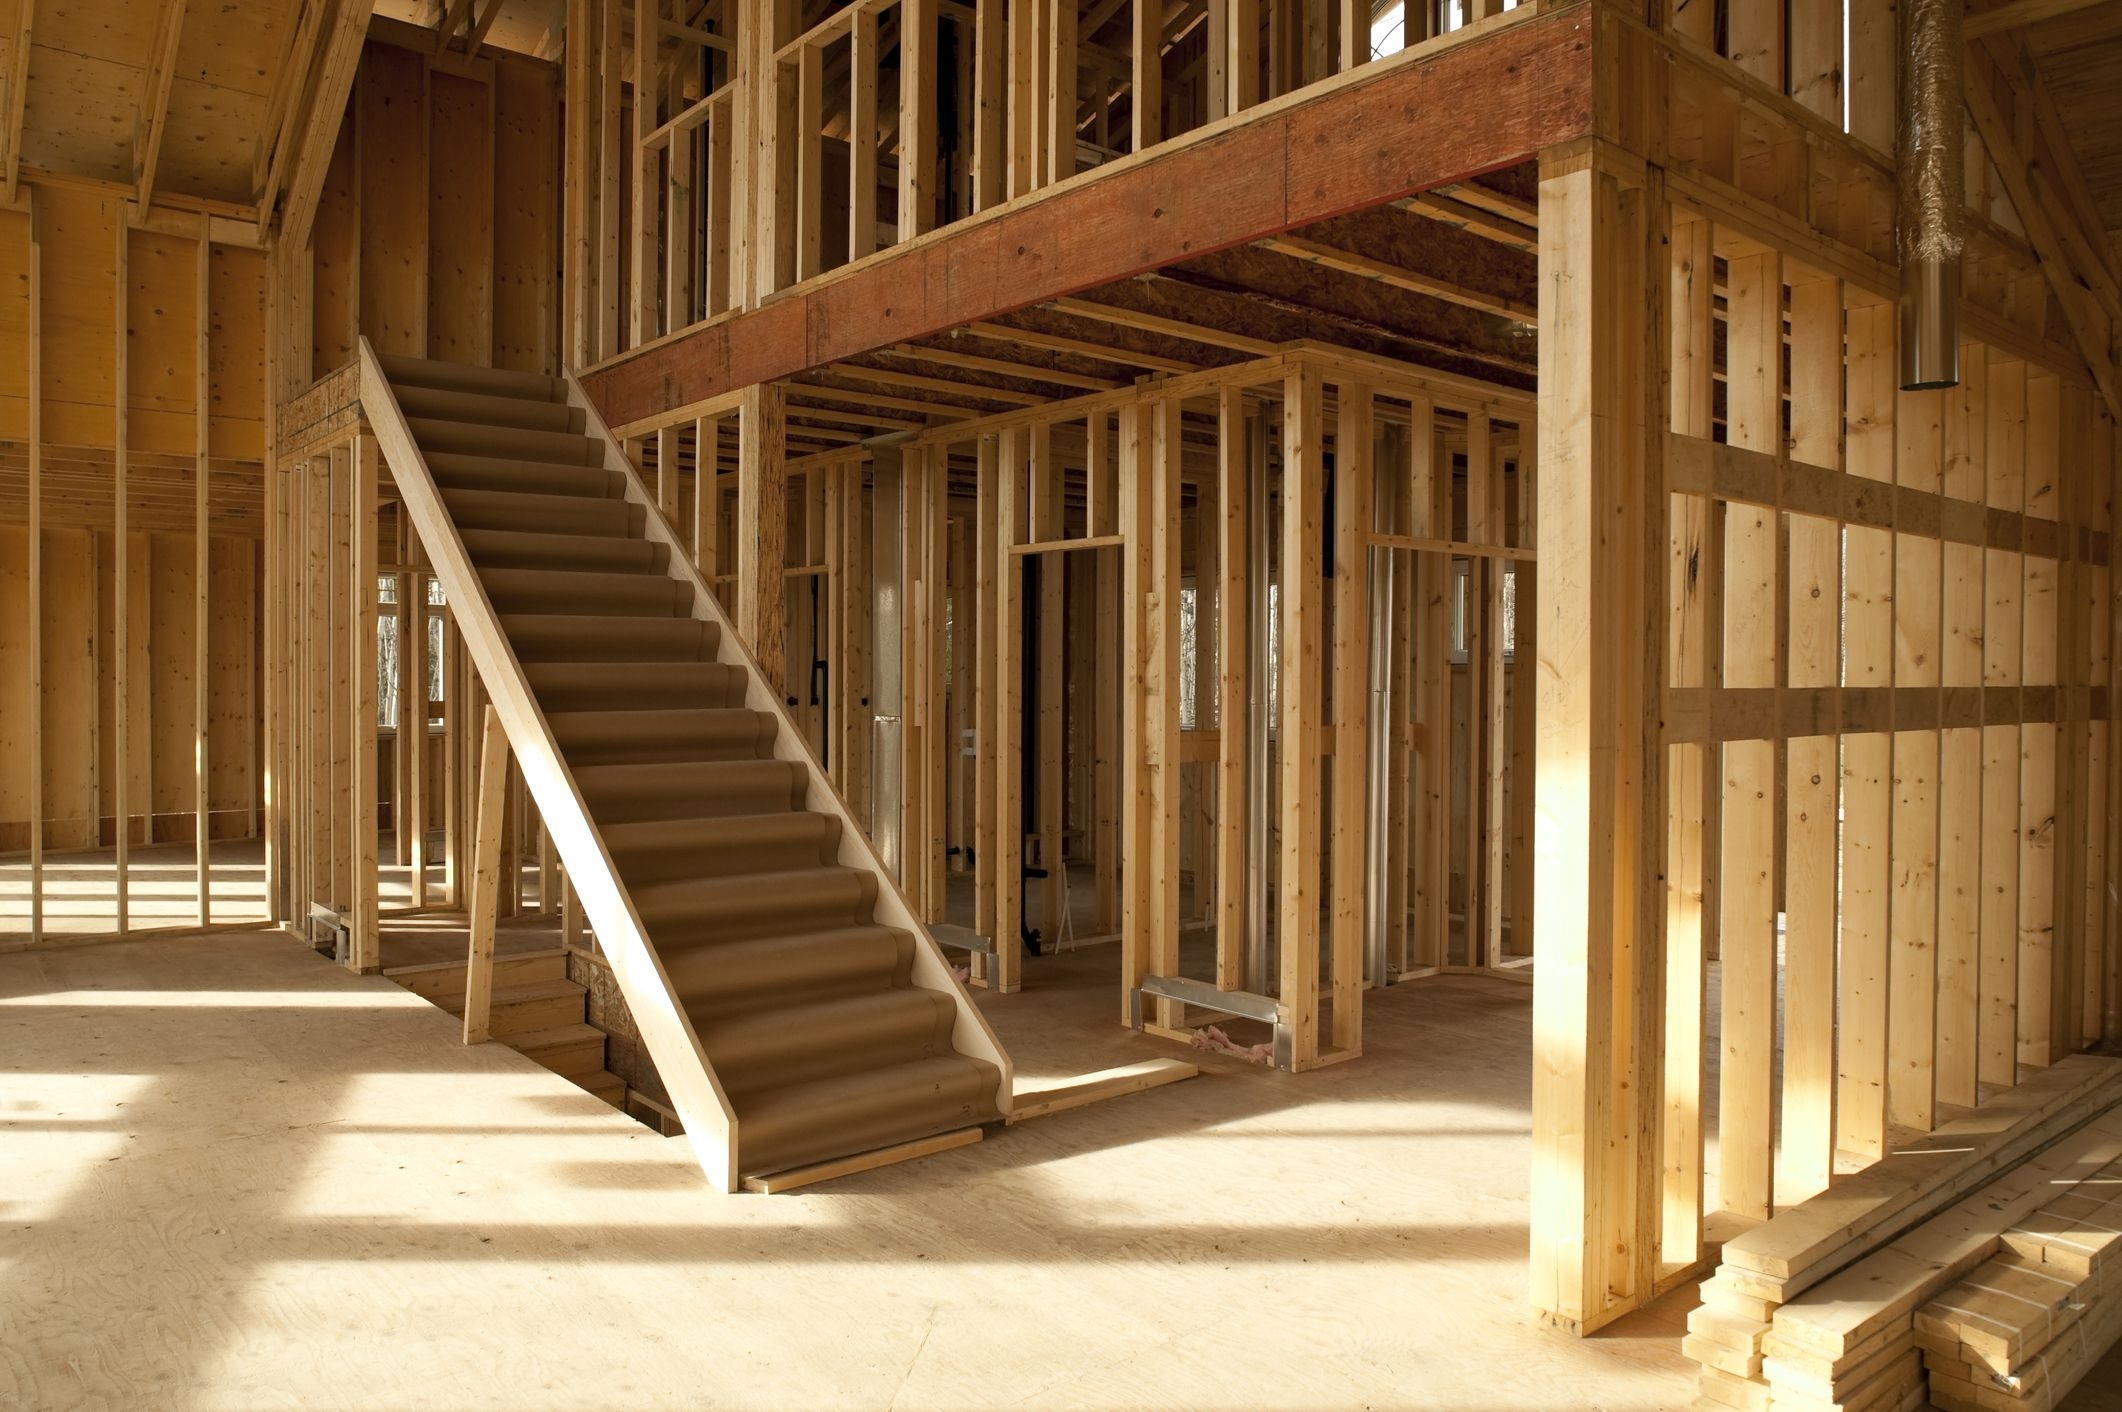 How To Keep Your Stairs Up To Code   Best Wood For Stair Stringers   Framing Square   Stair Landing   Pine Stair   Stair Tread   Deck